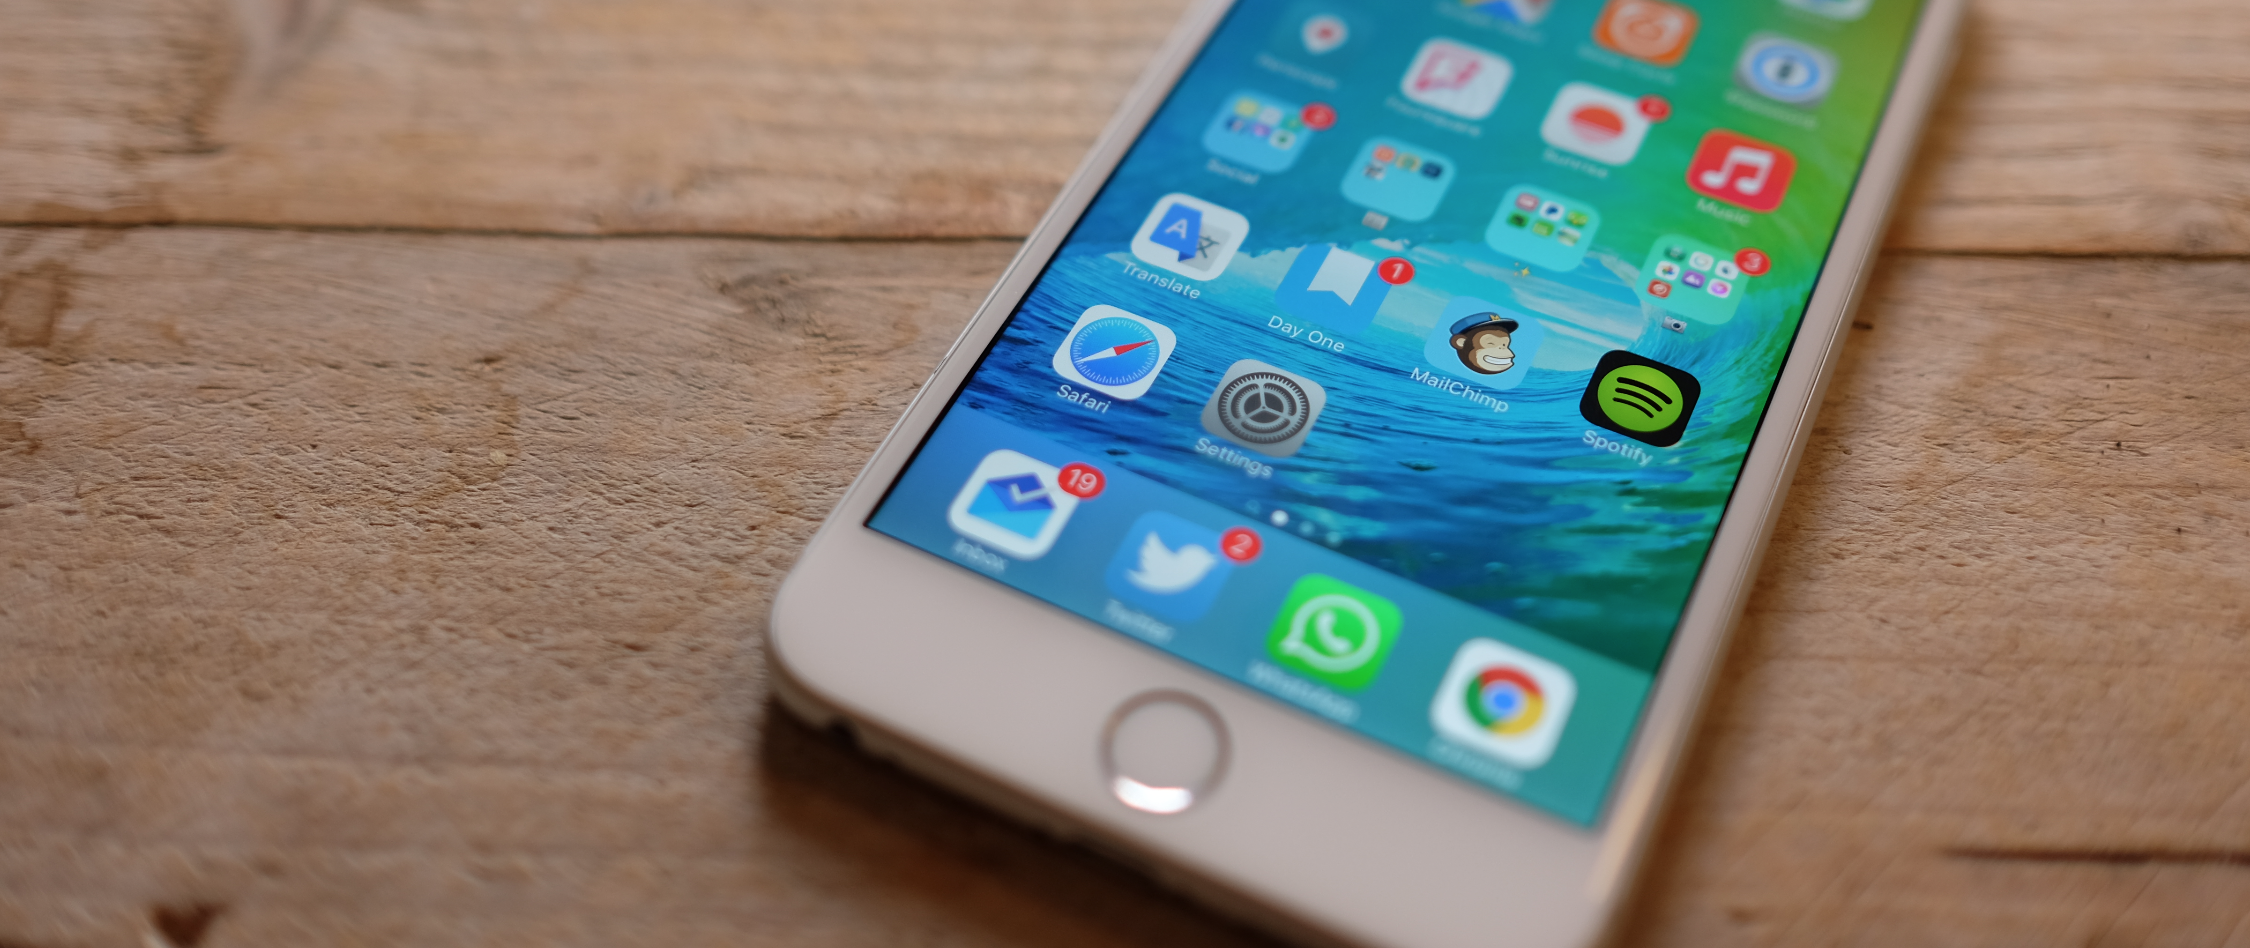 iOS 9 allows developers to build ad blocking extensions